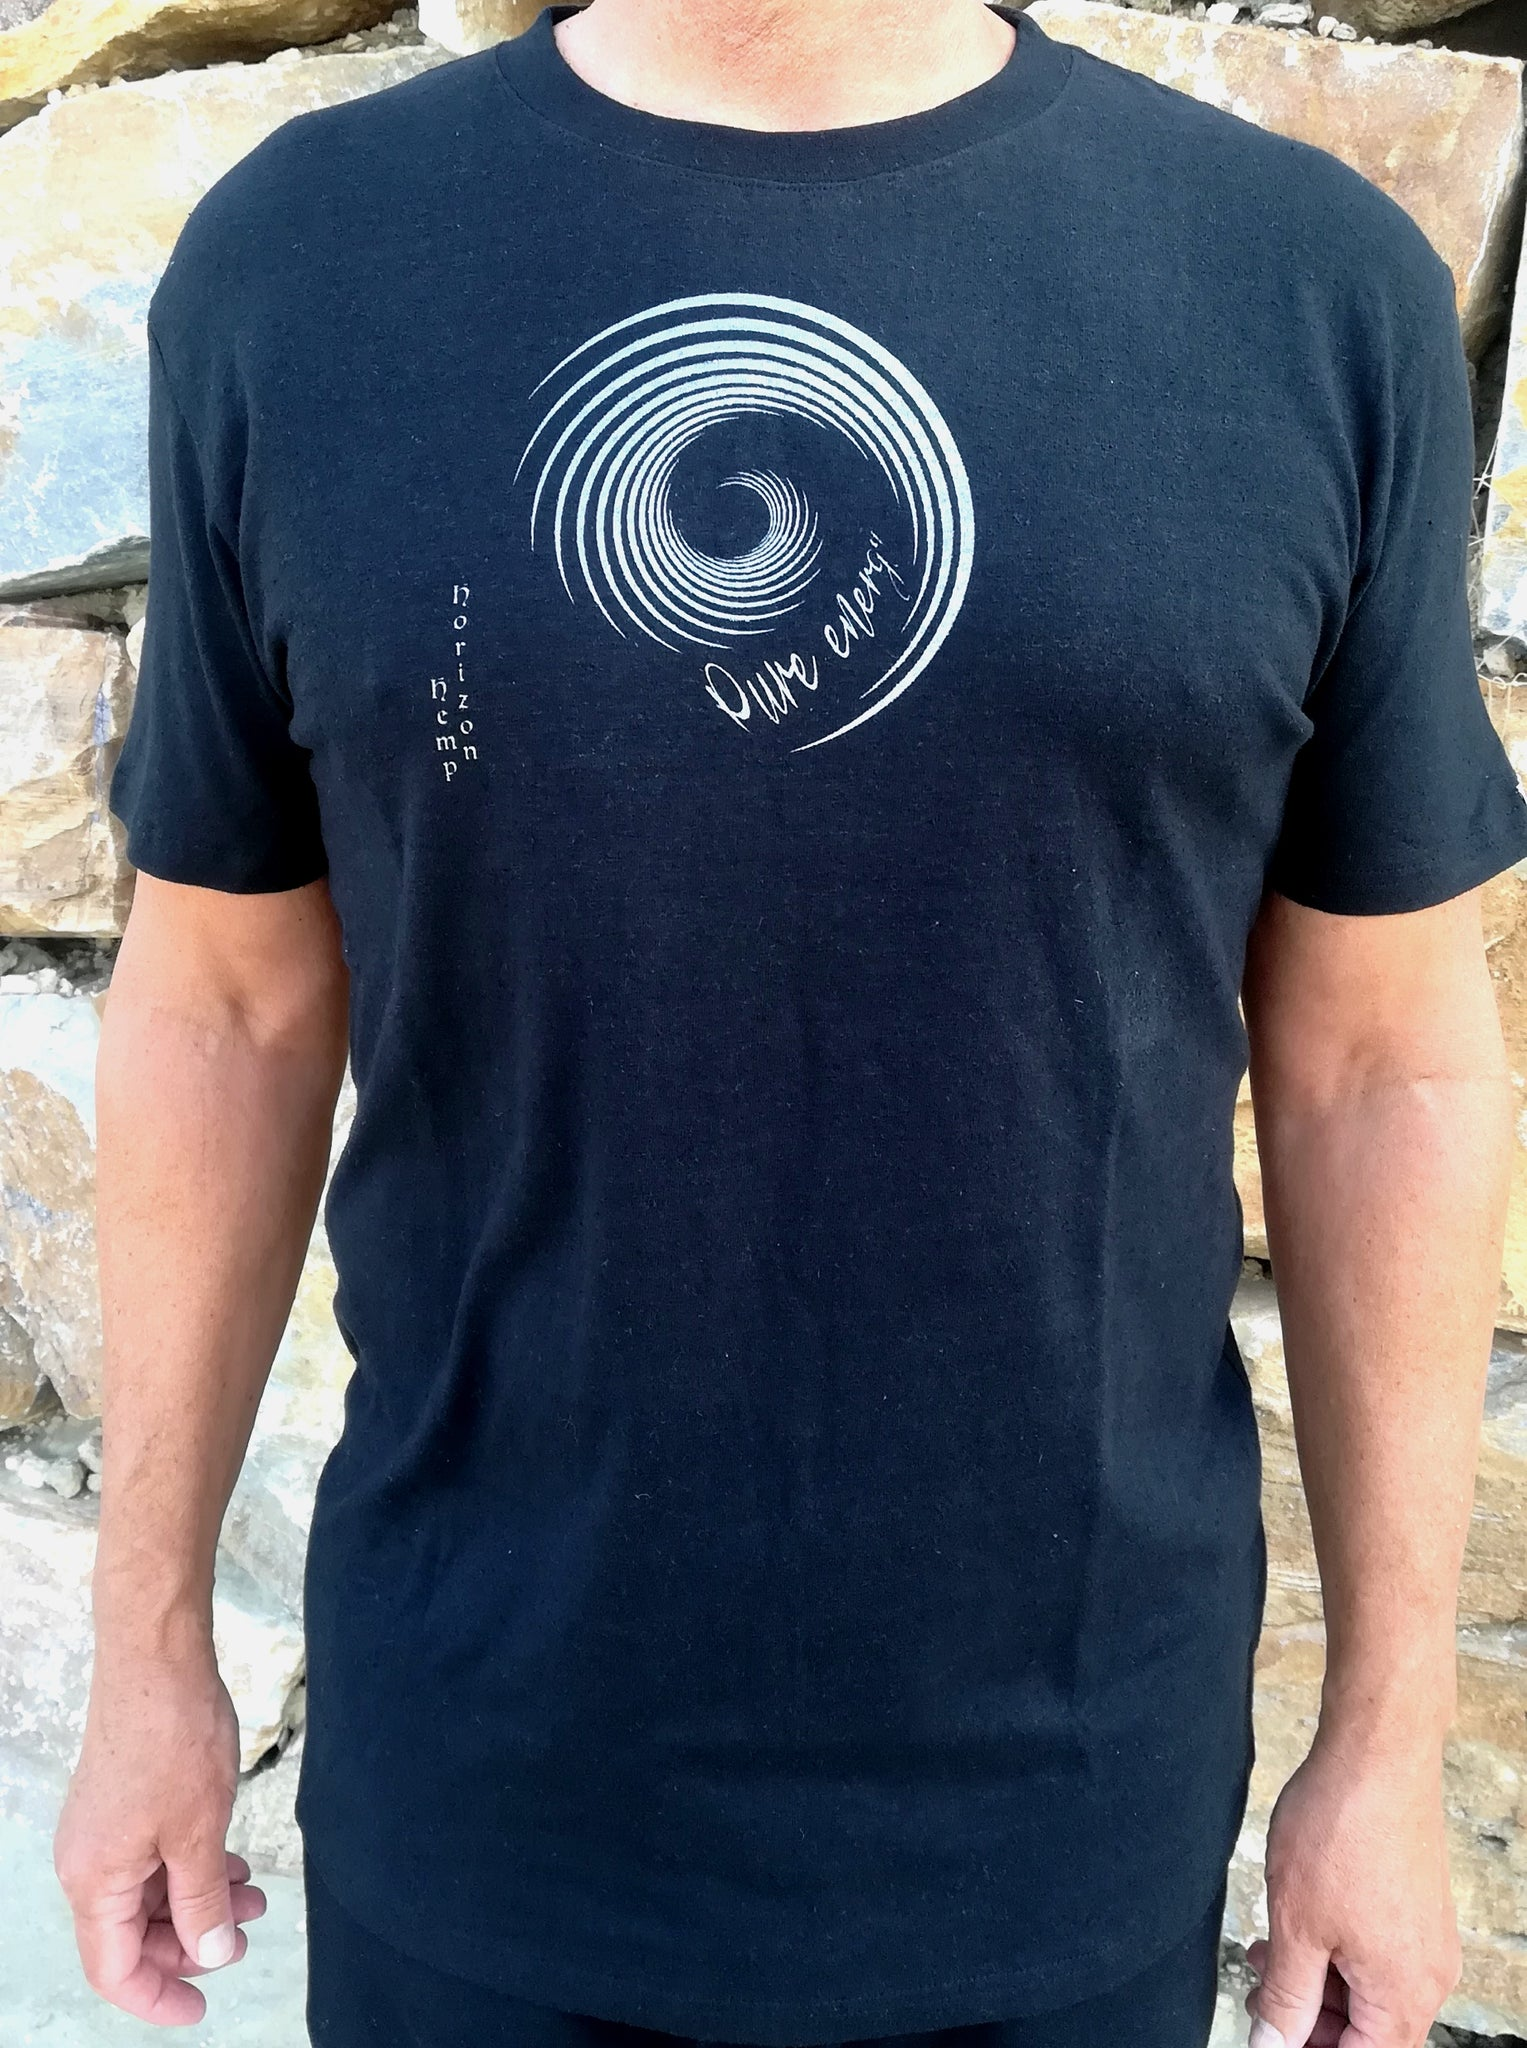 Hemp Pure Energy T-shirt - Hemp Horizon